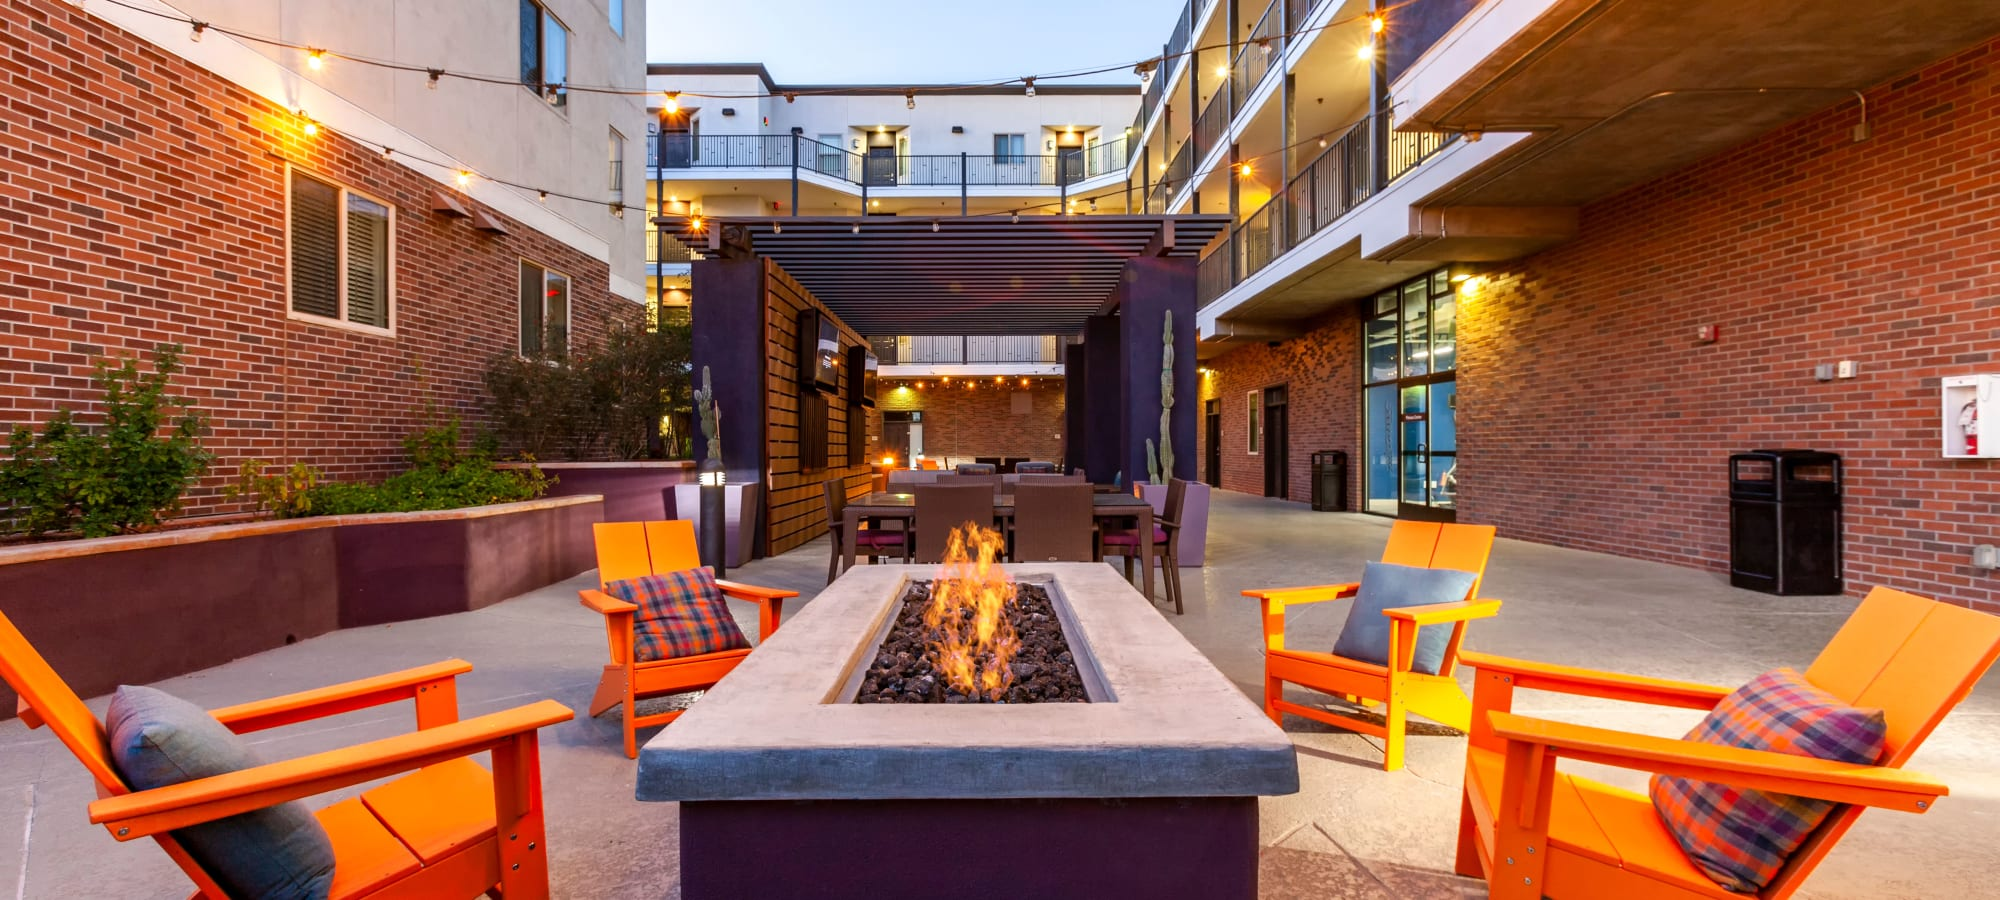 Outdoor seating with orange chairs at The Fleetwood in Tempe, Arizona